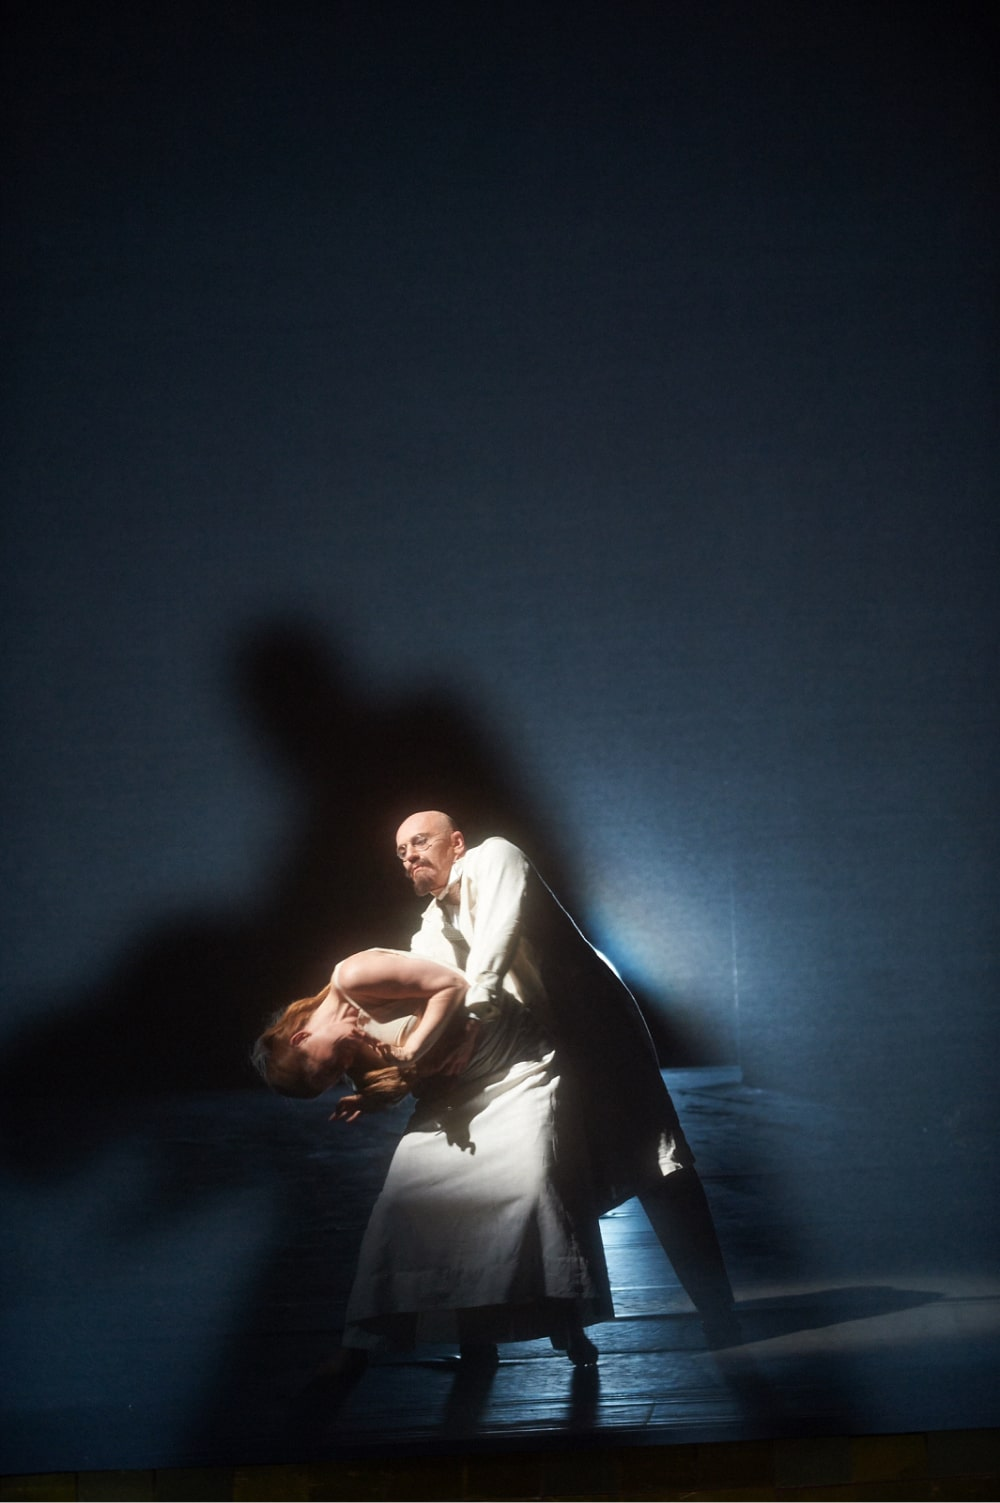 Bald man in lab coat clutches writhing woman in bright light, casting shadows behind.